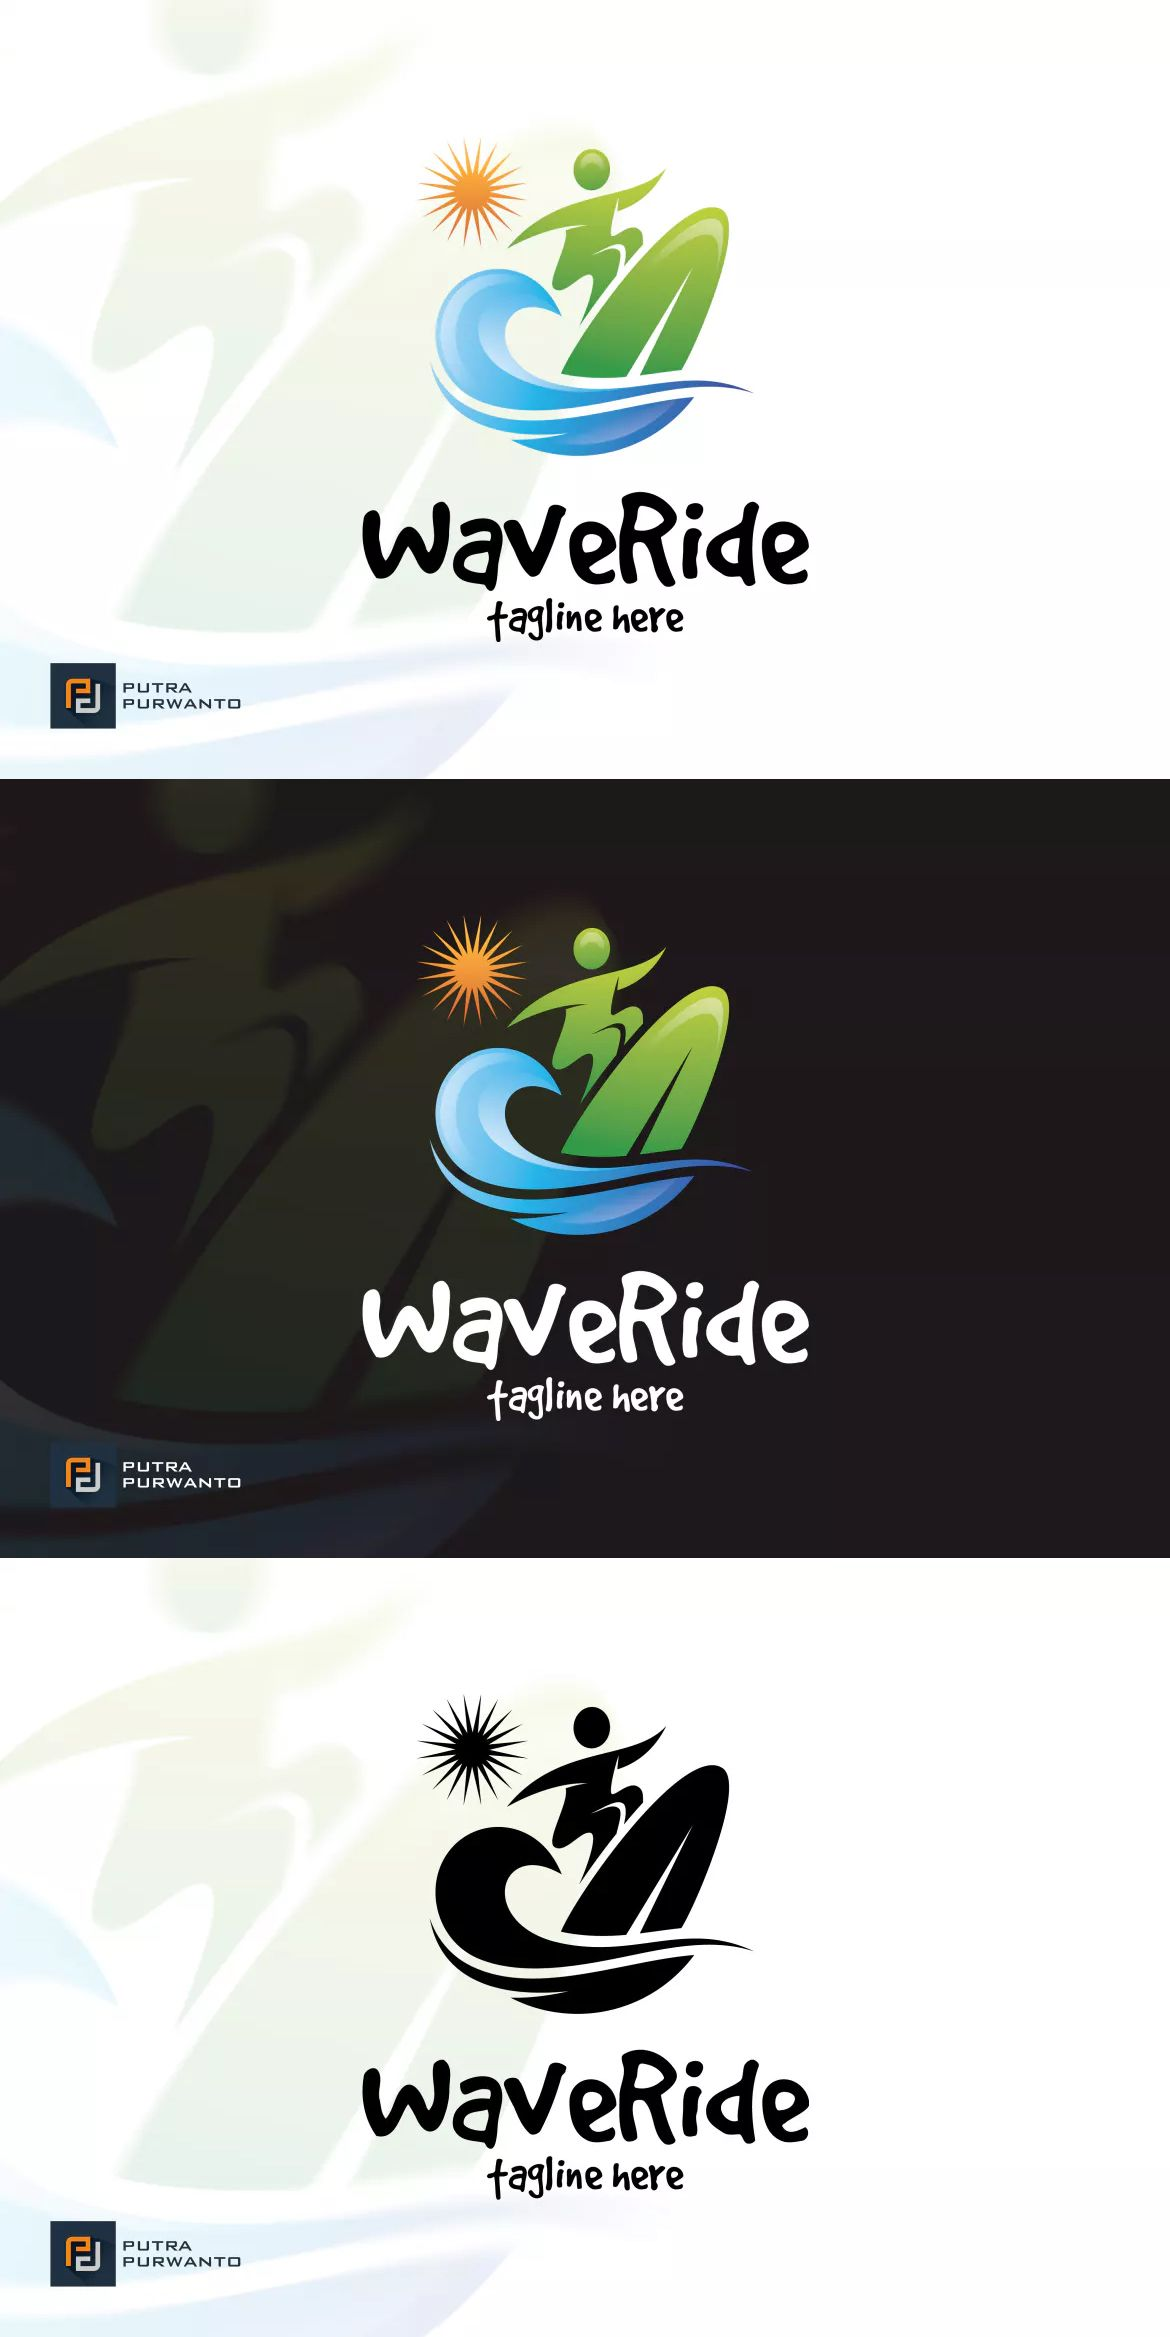 Wave Ride Logo Template by putra_purwanto on Logo